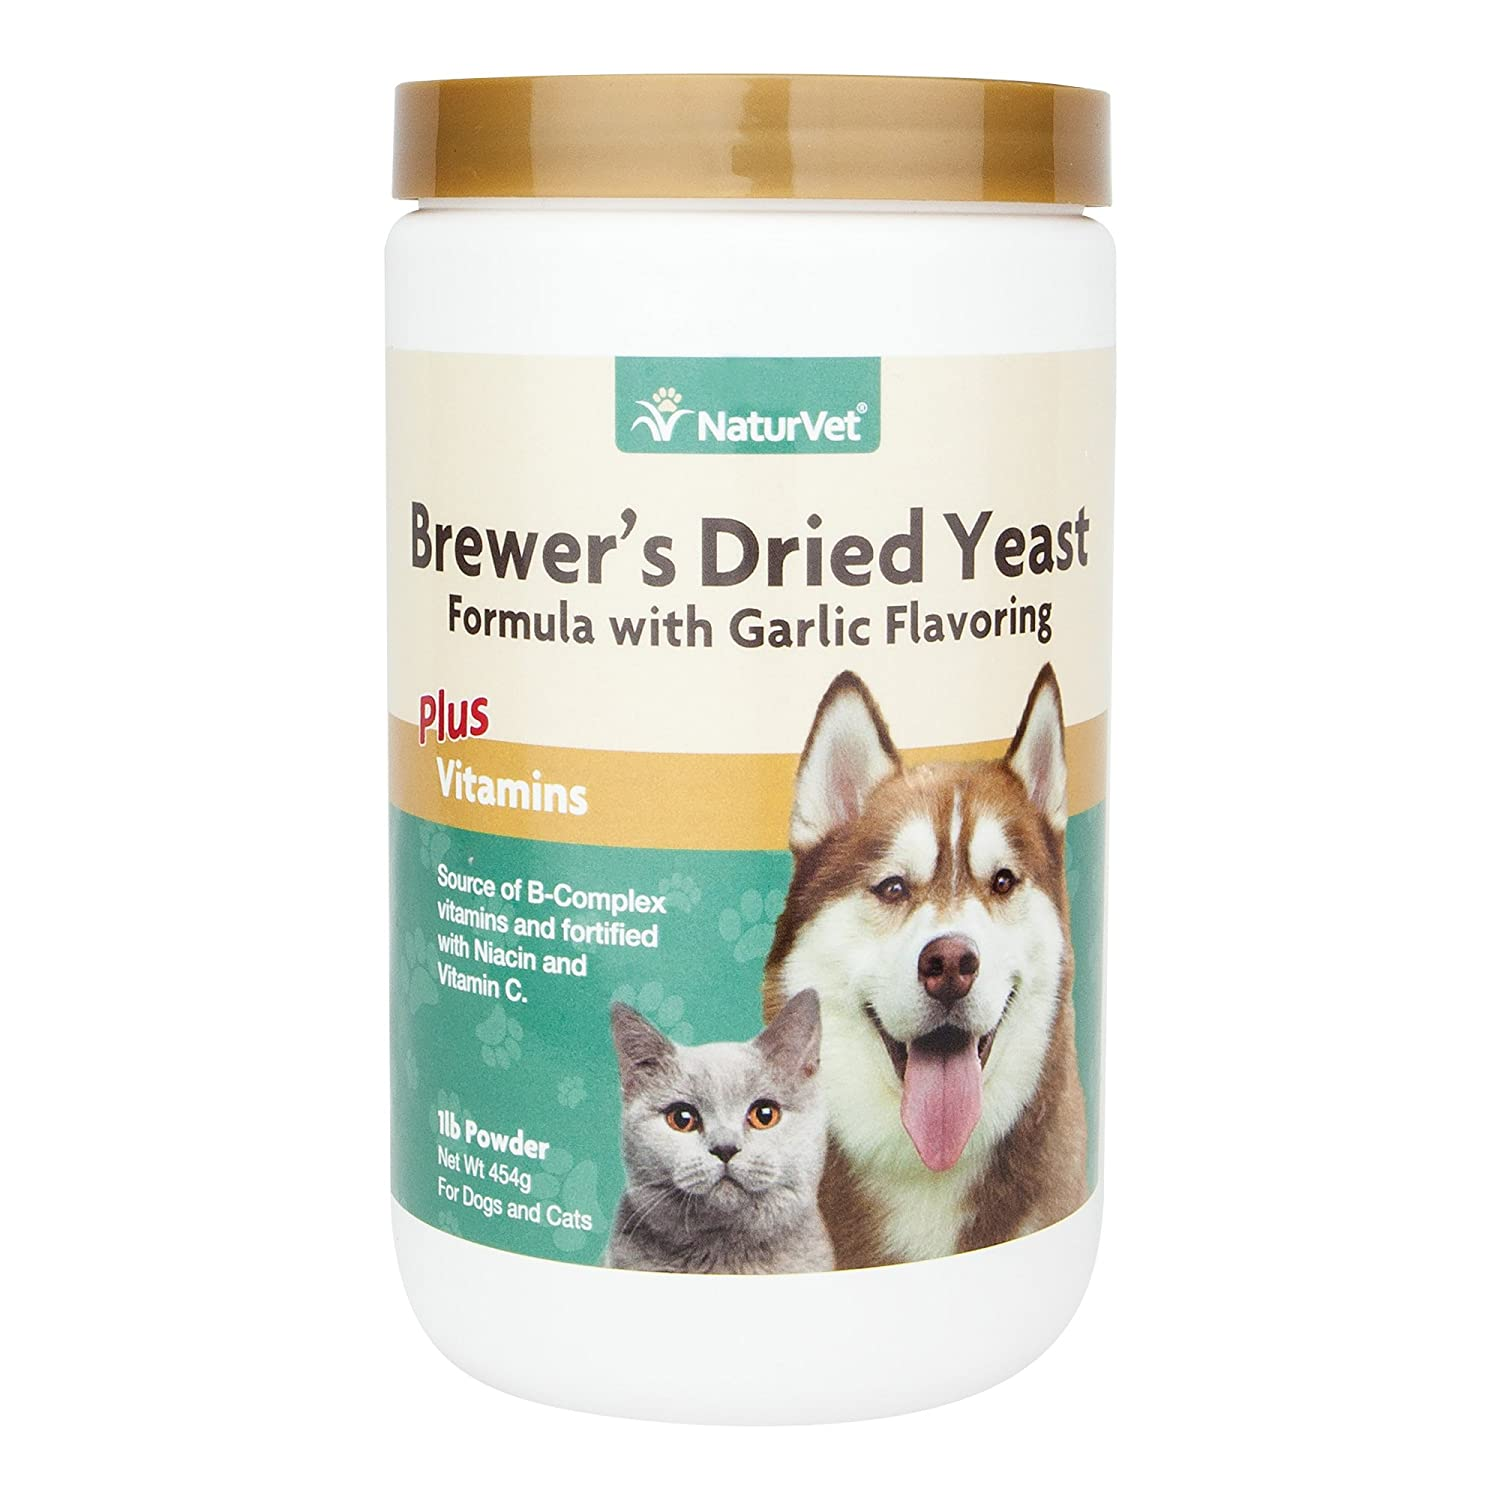 (0.5kg) NaturVet Brewer's Dried Yeast Formula with Garlic Flavouring Plus Vitamins for Dogs and Cats, Powder, Made in USA